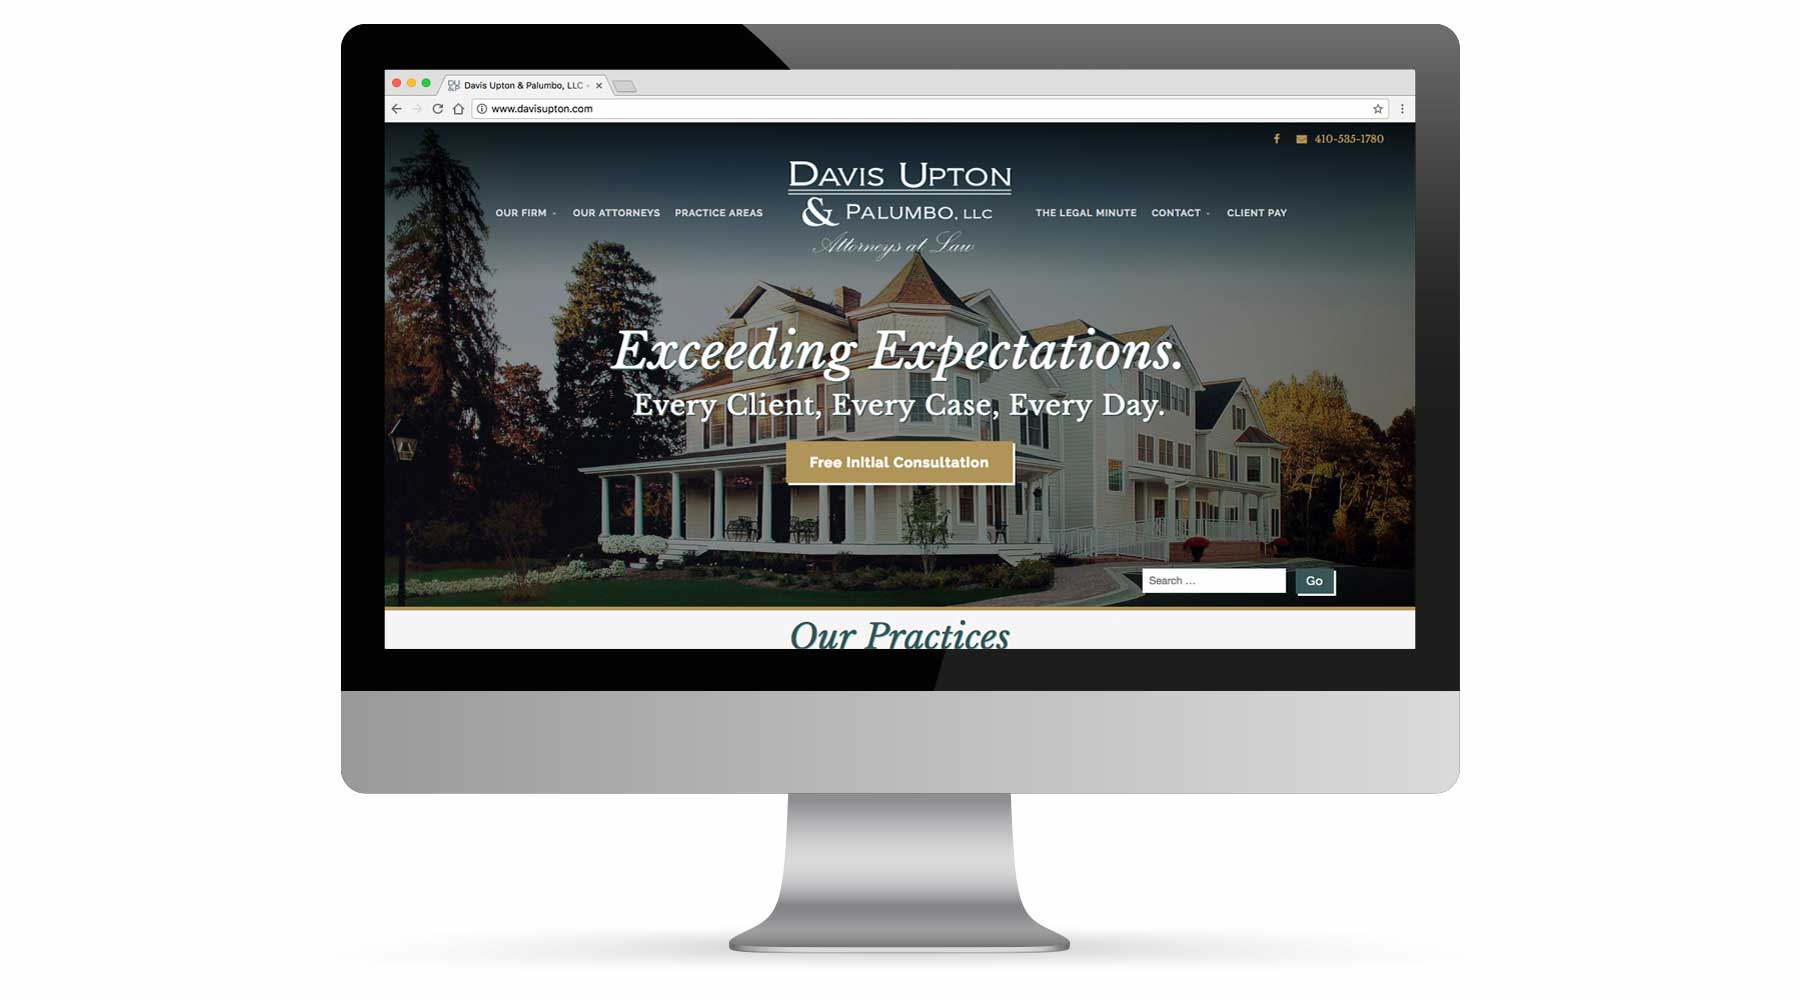 Davis, Upton, & Palumbo Website Portfolio